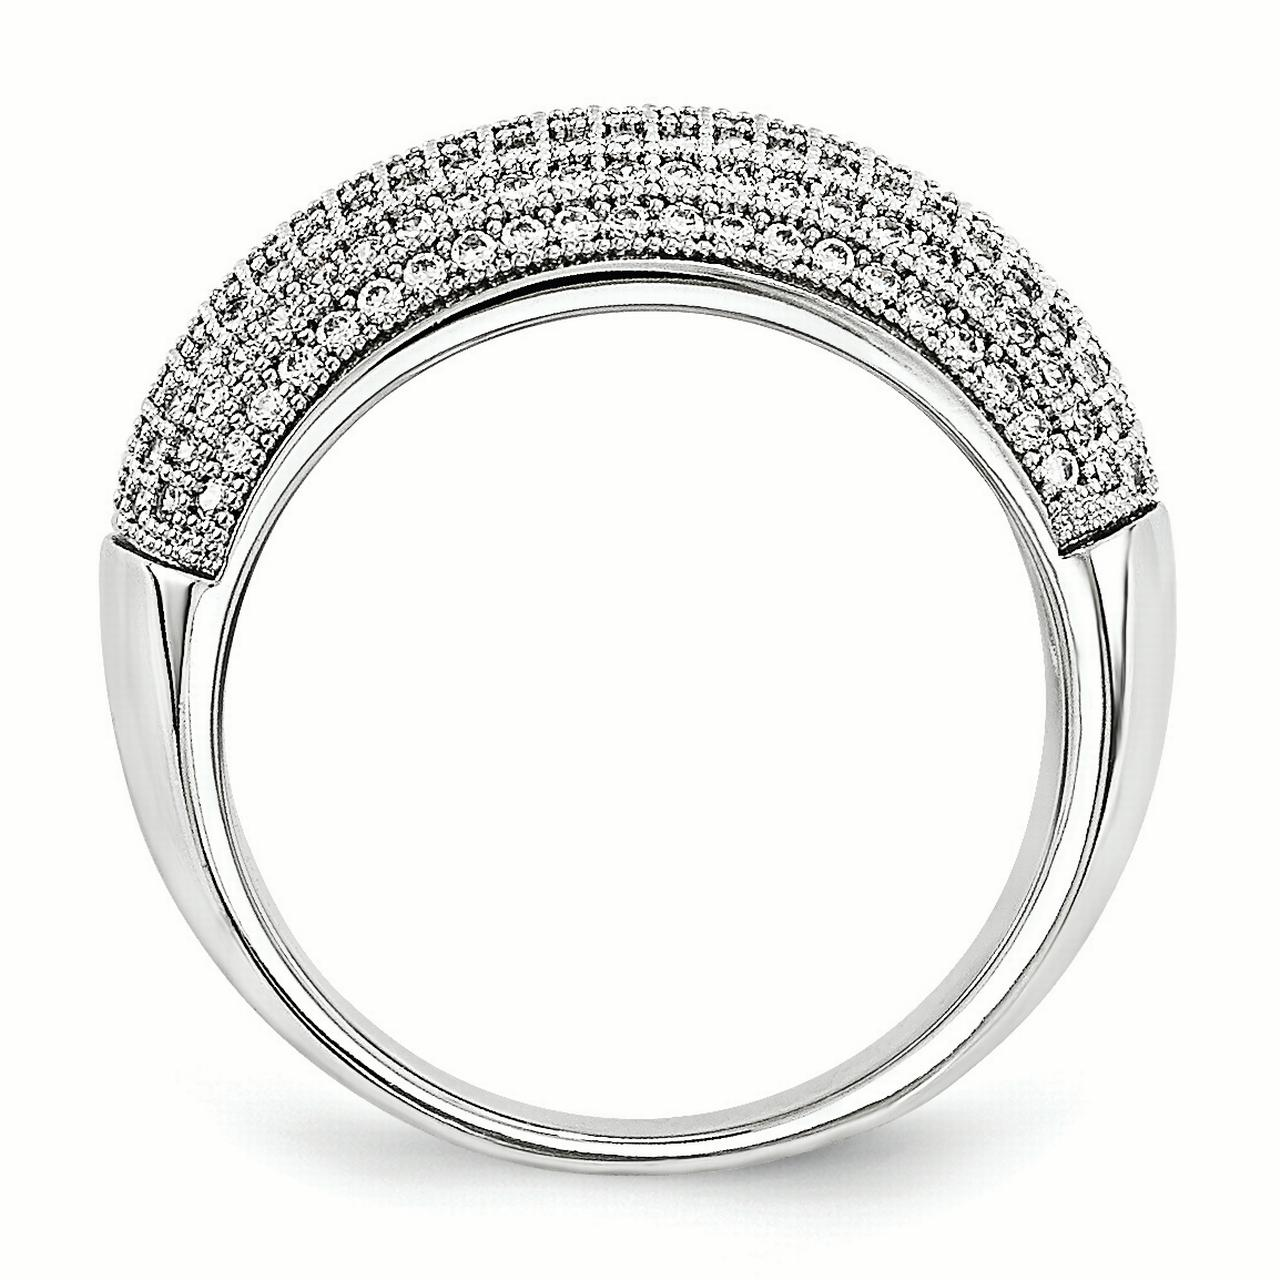 925 Sterling Silver Cubic Zirconia Cz Band Ring Size 7.00 Fine Jewelry Gifts For Women For Her - image 2 de 3